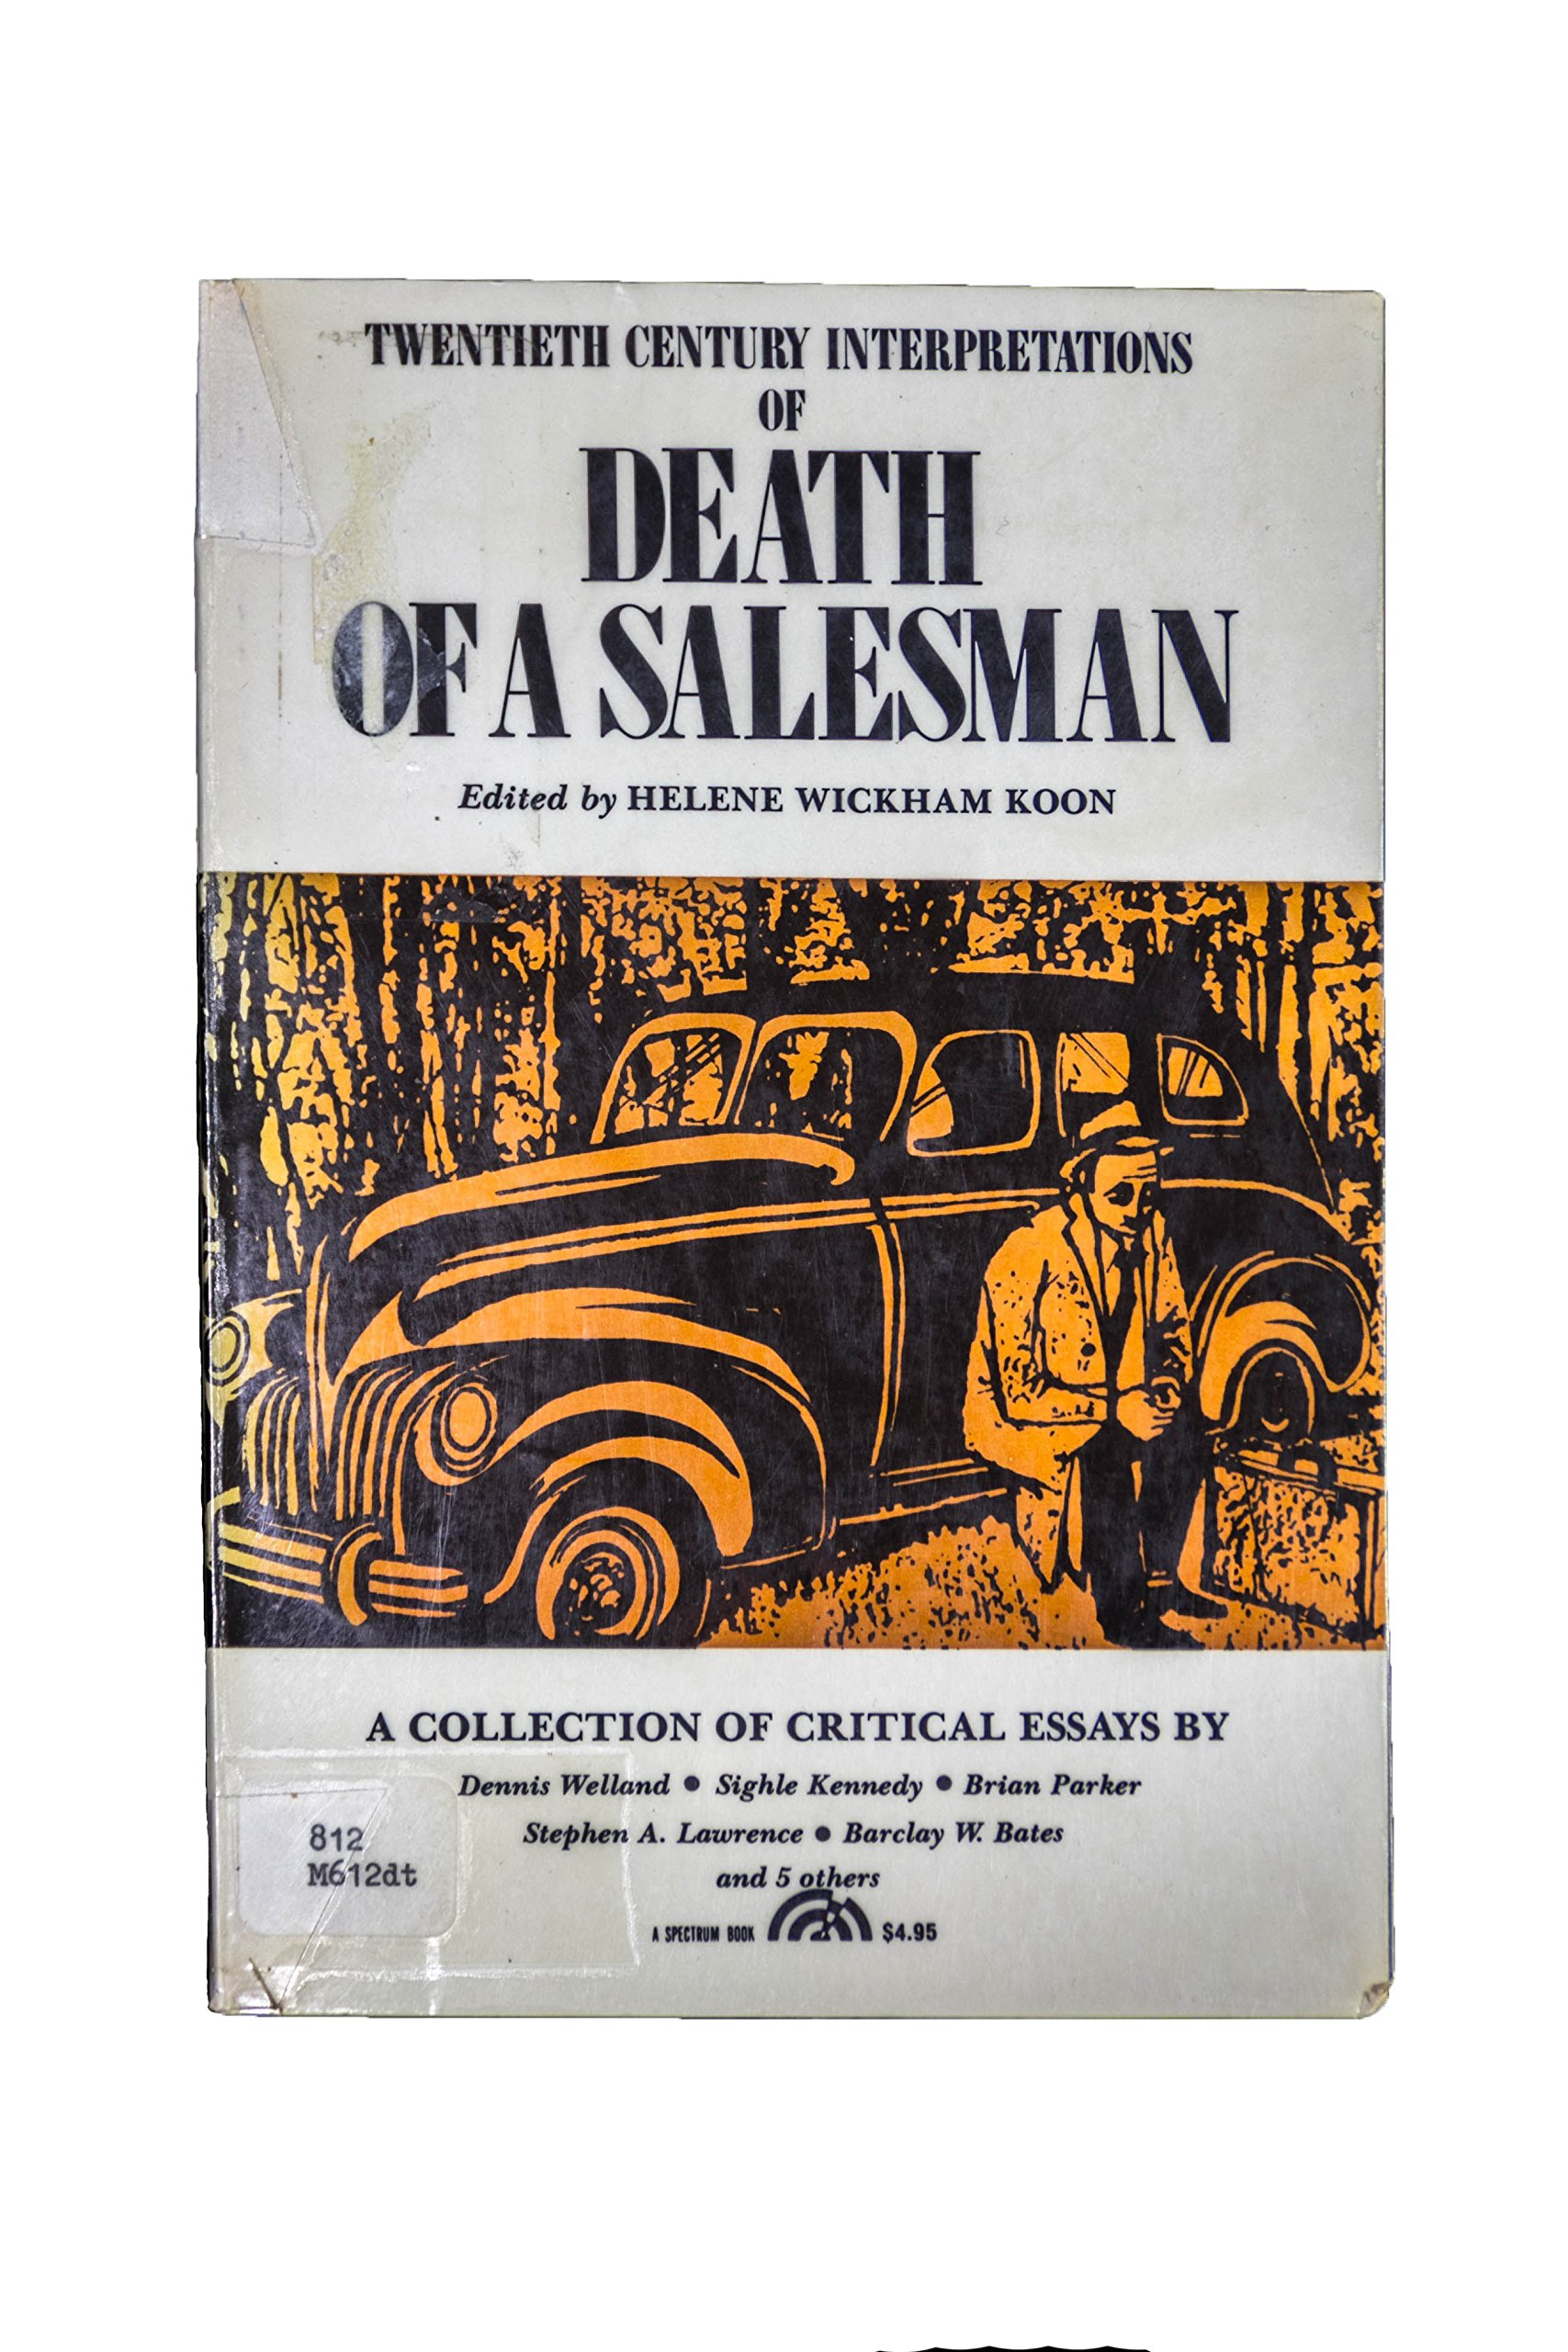 Essay About Paper Death Of A Salesman A Collection Of Critical Essays Th Century  Interpretations Helene Wickham Koon  Amazoncom Books Science Development Essay also How To Write A Proposal Essay Example Death Of A Salesman A Collection Of Critical Essays Th Century  How To Start A Proposal Essay